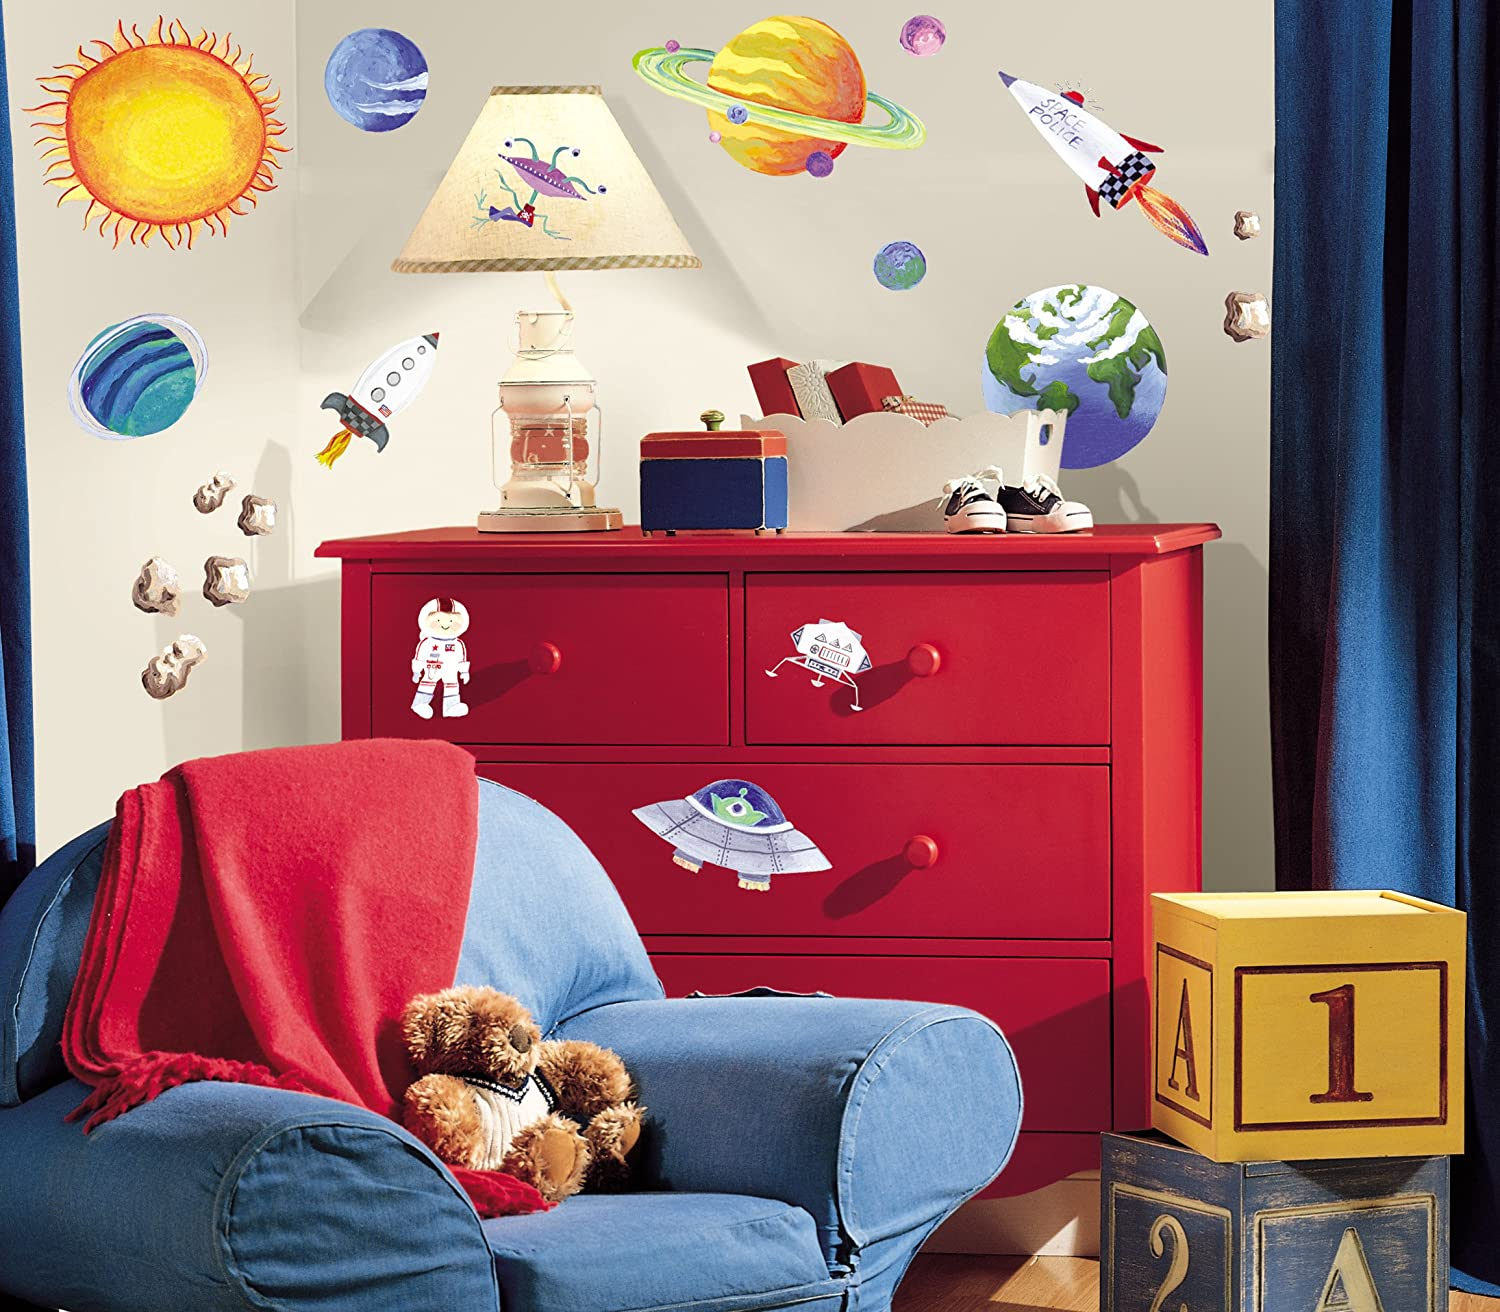 Space Bedroom Decor Roommates Rmk1316scs Outer Space Peel Stick Wall Decals